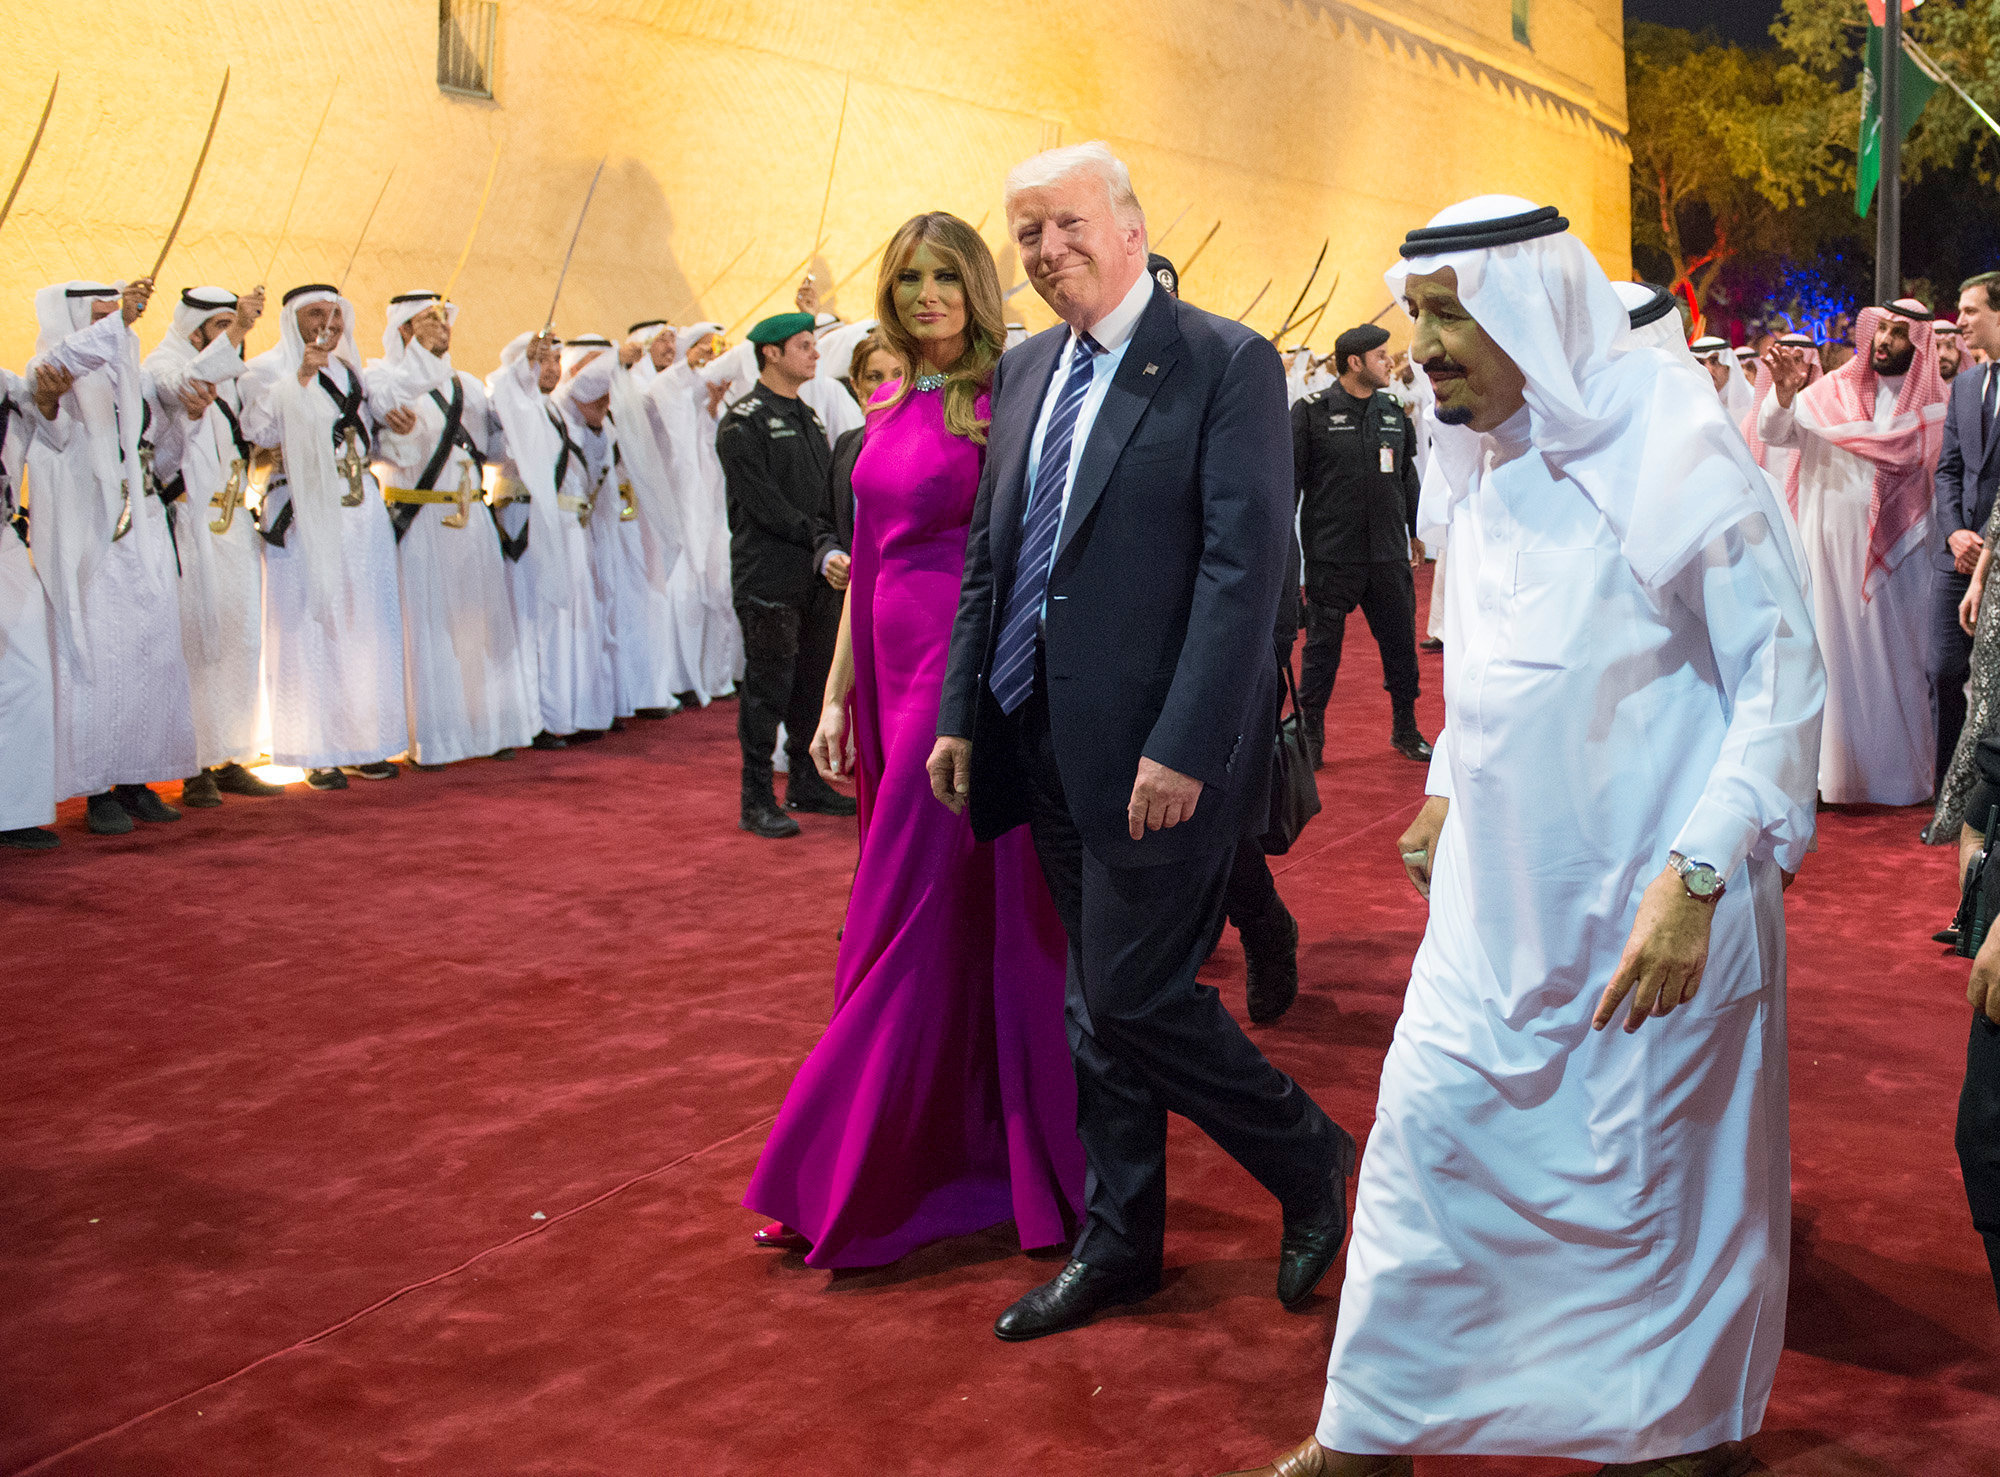 US President Donald Trump and first lady Melania Trump are welcomed by Saudi Arabia's King Salman bin Abdulaziz Al Saud at Al Murabba Palace in Riyadh, Saudi Arabia May 20, 2017. Picture taken May 20, 2017